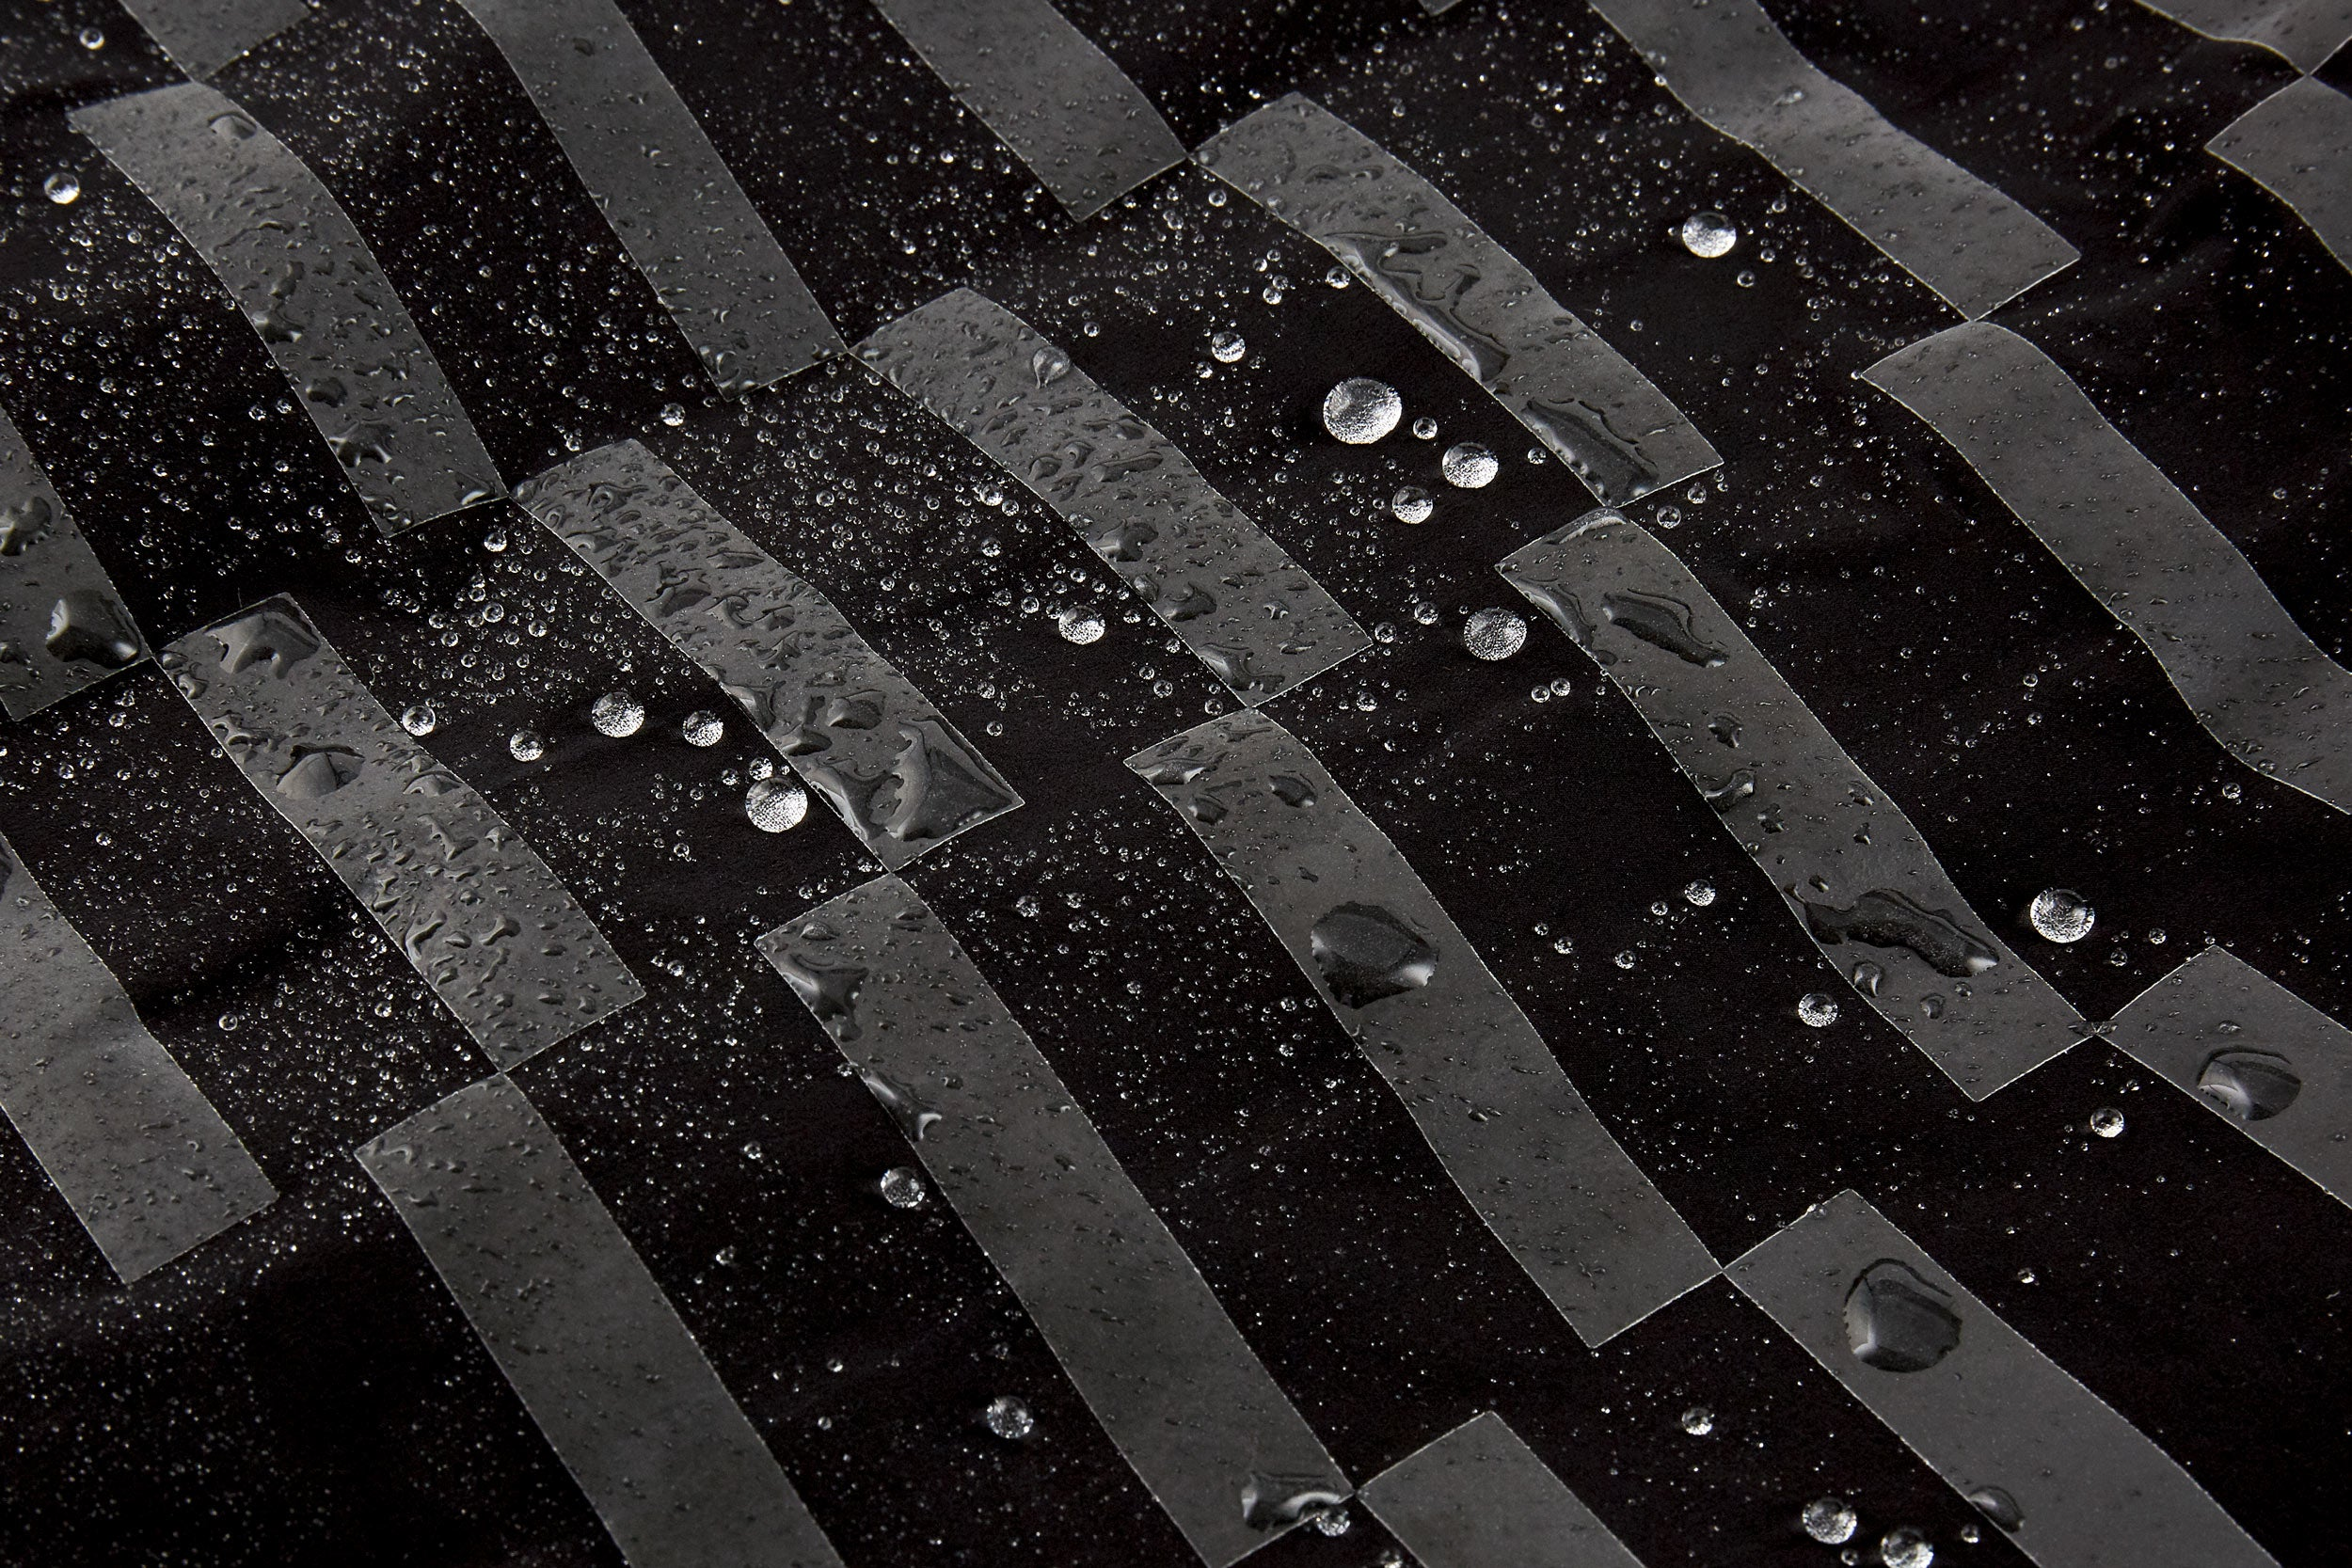 Our ProTech performance fabrics are treated with a double layer of DWR (Durable Water Repellent) providing outstanding hydrophobic performance and giving a new level of protection in wet-weather and changeable conditions. Excellent wind resistance is another key benefit, while the fabric's thermo-regulating qualities allow excess heat to escape, even when riding high tempo. True three-season versatility.